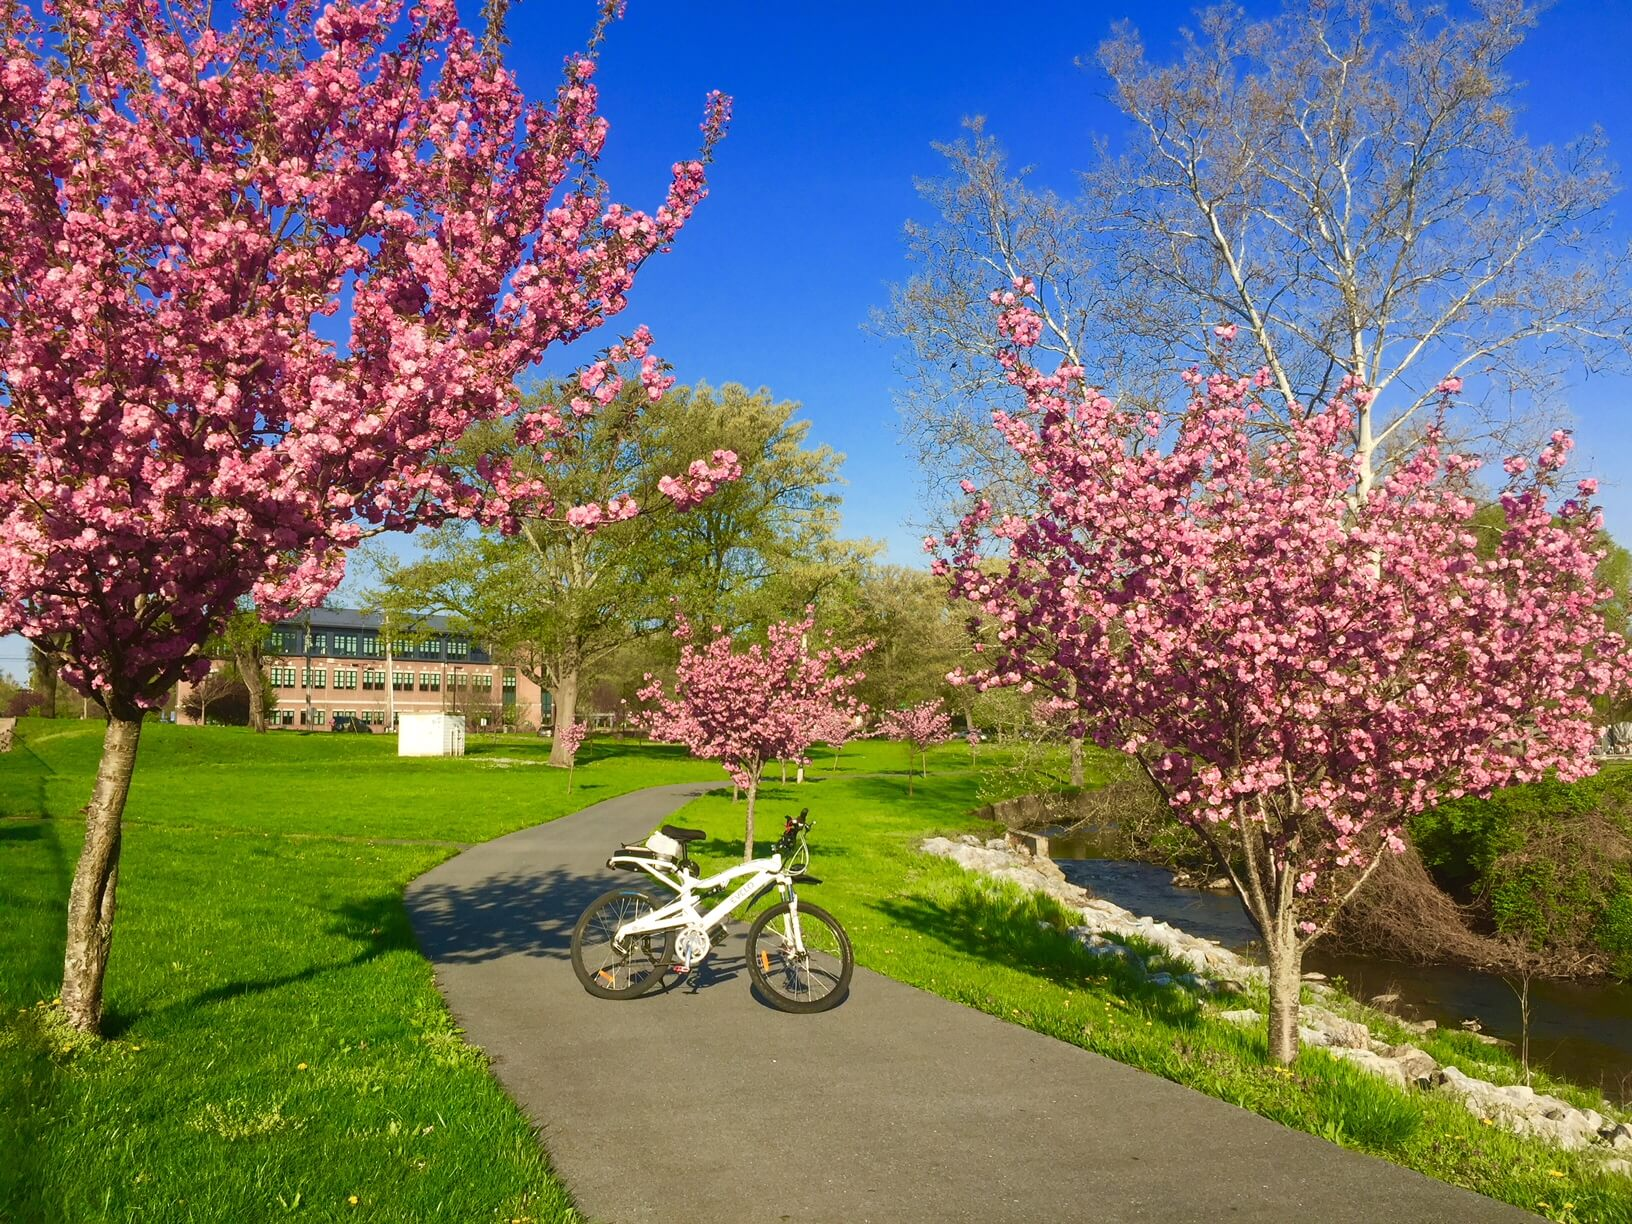 A lone bicycle stands among the Pink Cherry Blossom Trees on the Brentwood trail in Reading, PA